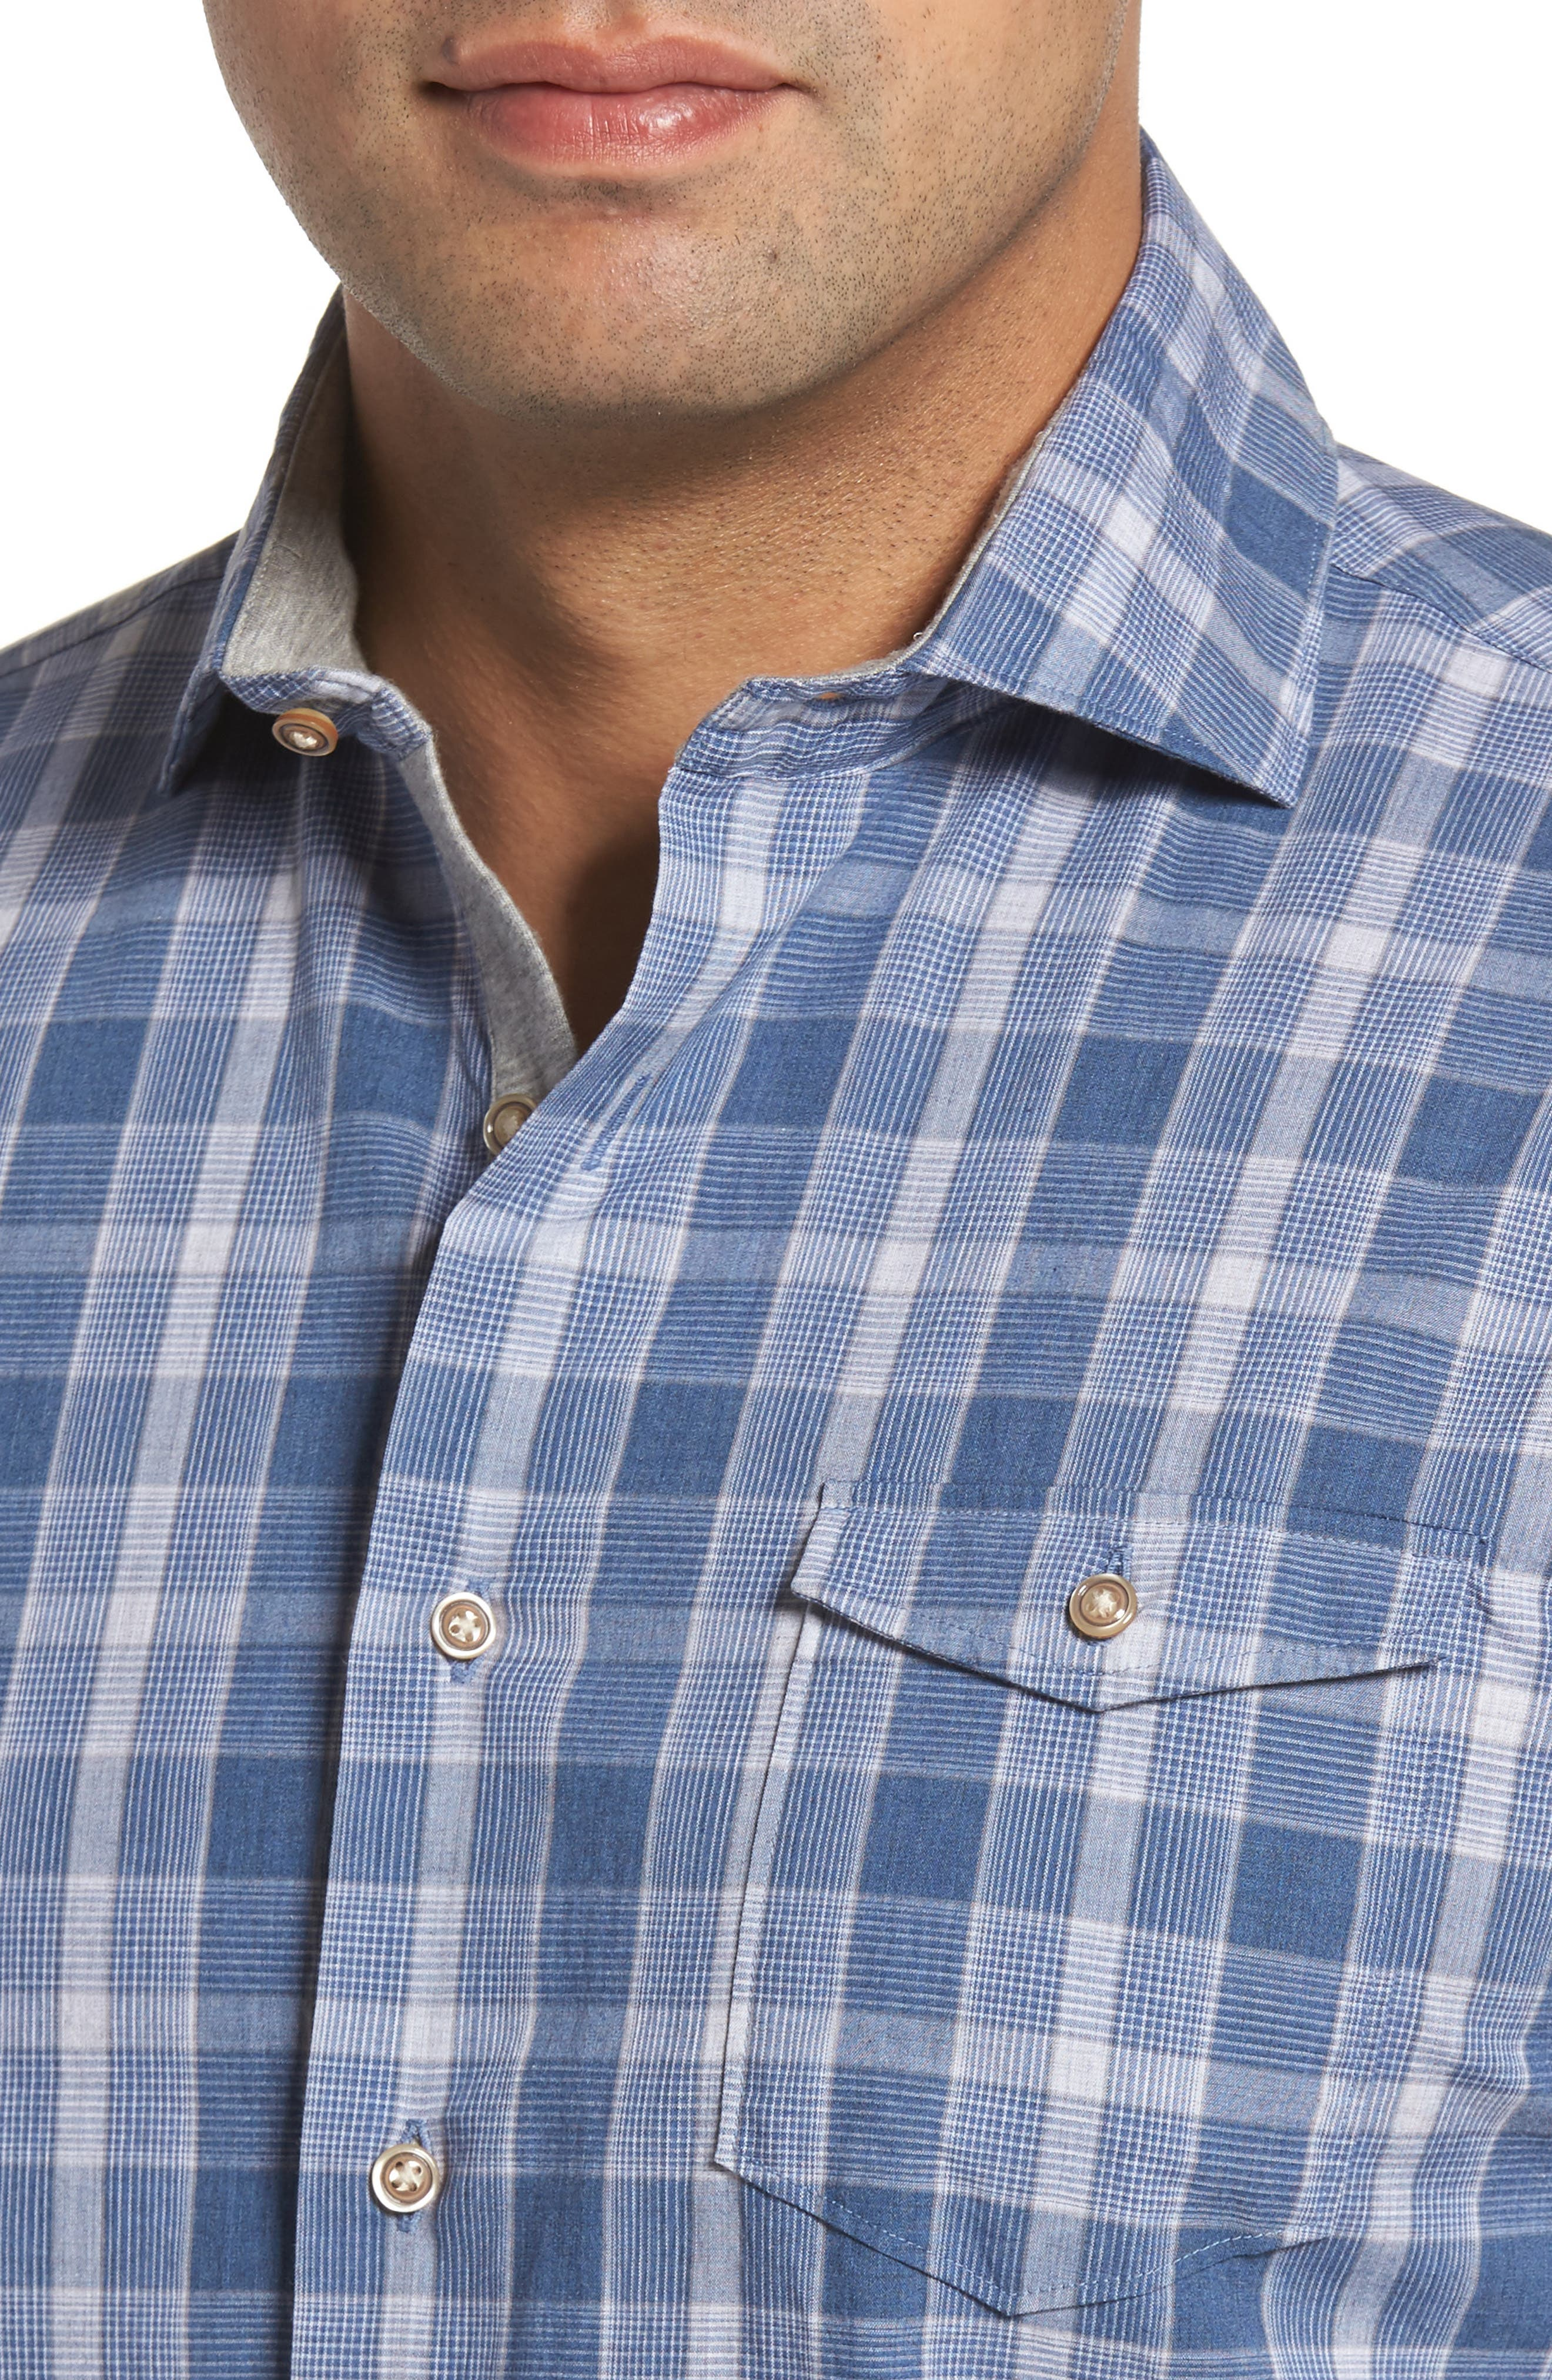 Highlands Classic Fit Plaid Sport Shirt,                             Alternate thumbnail 4, color,                             464